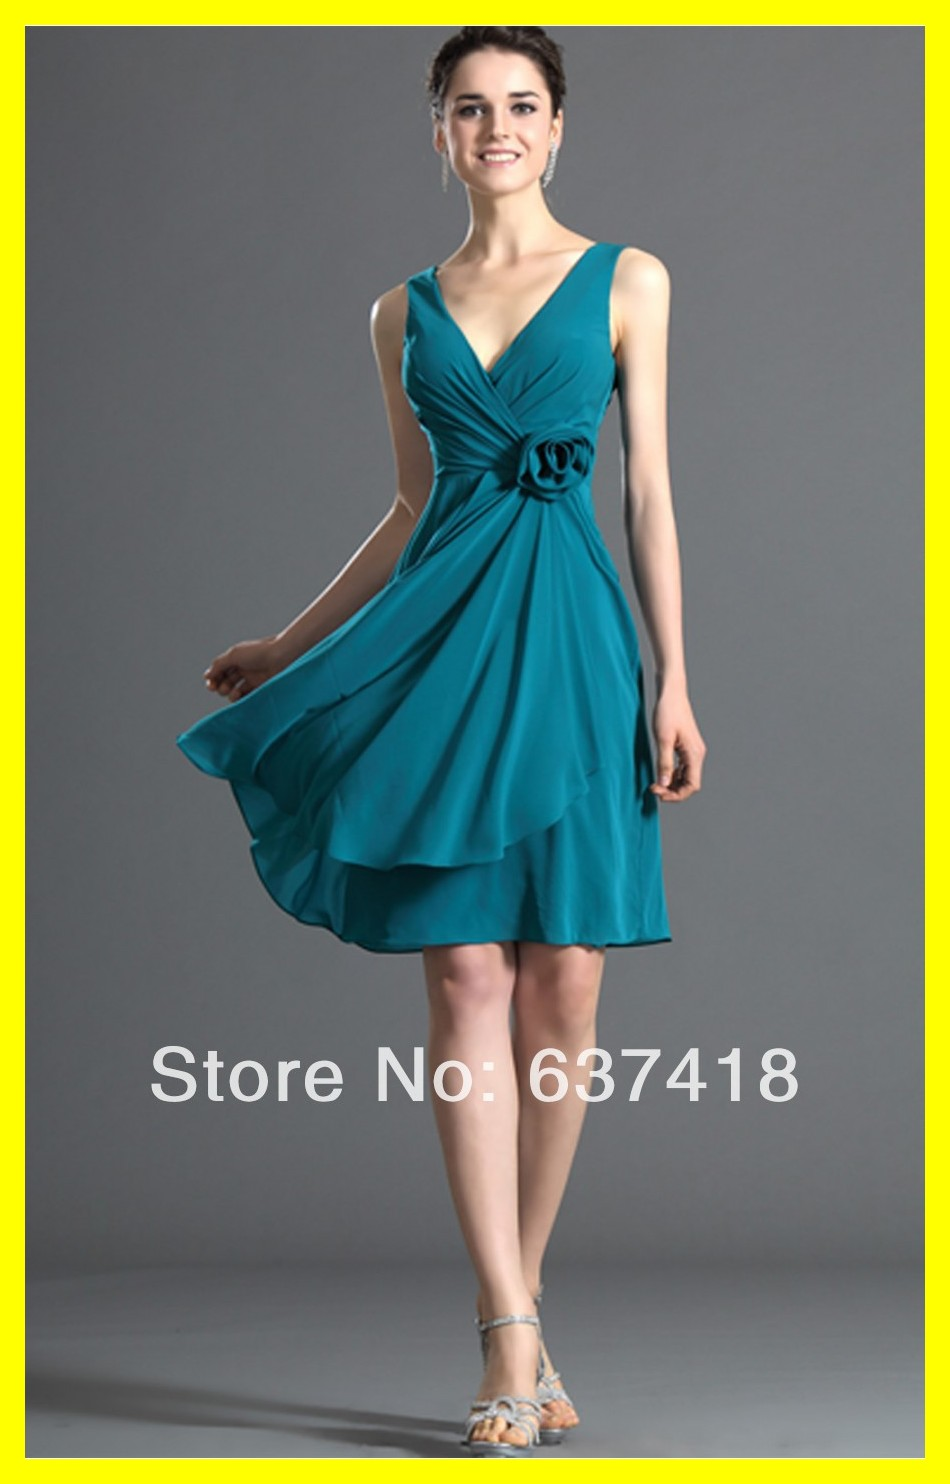 Teenage Bridesmaid Dresses Uk Stylish Mint Green Bridesmaids Ireland ...